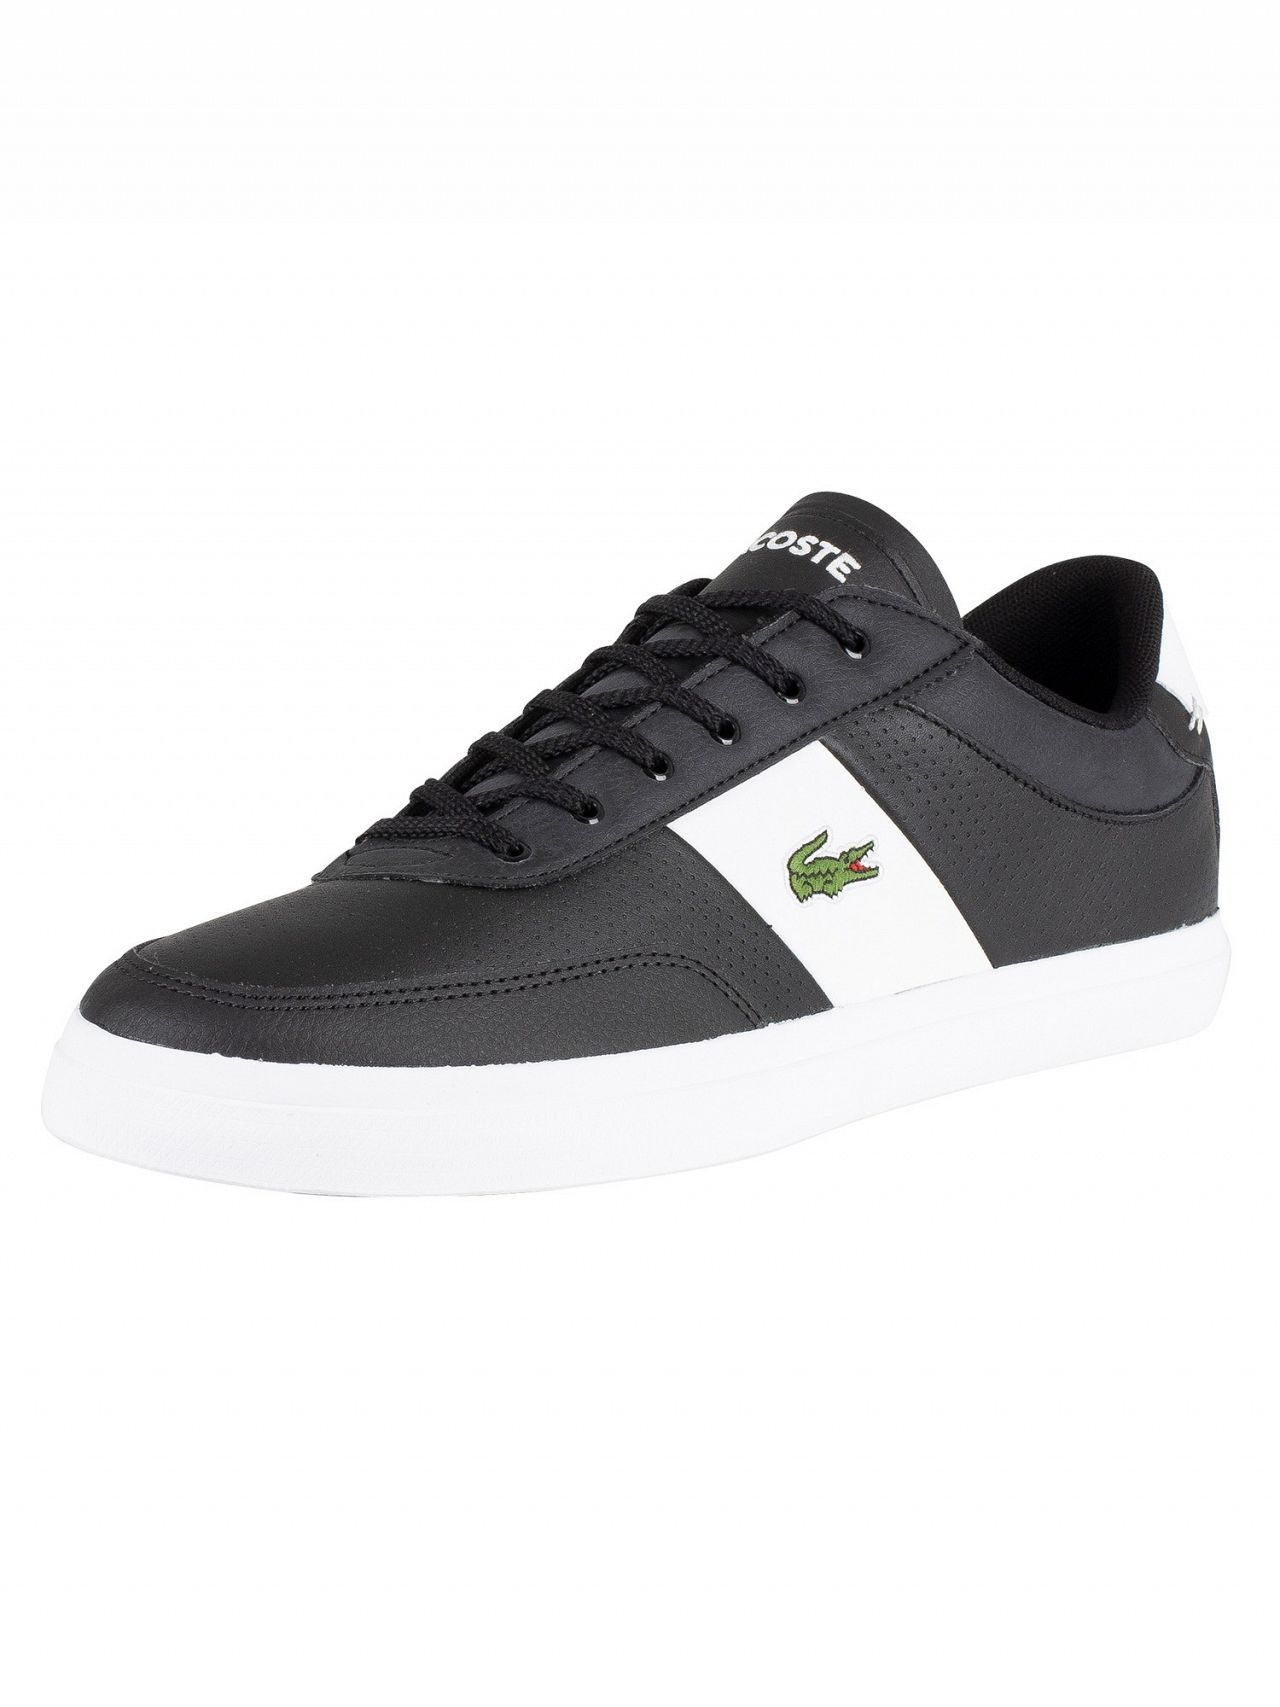 b6e900bb8 Lacoste Black/White Court-Master 119 2 Leather Trainers | Standout